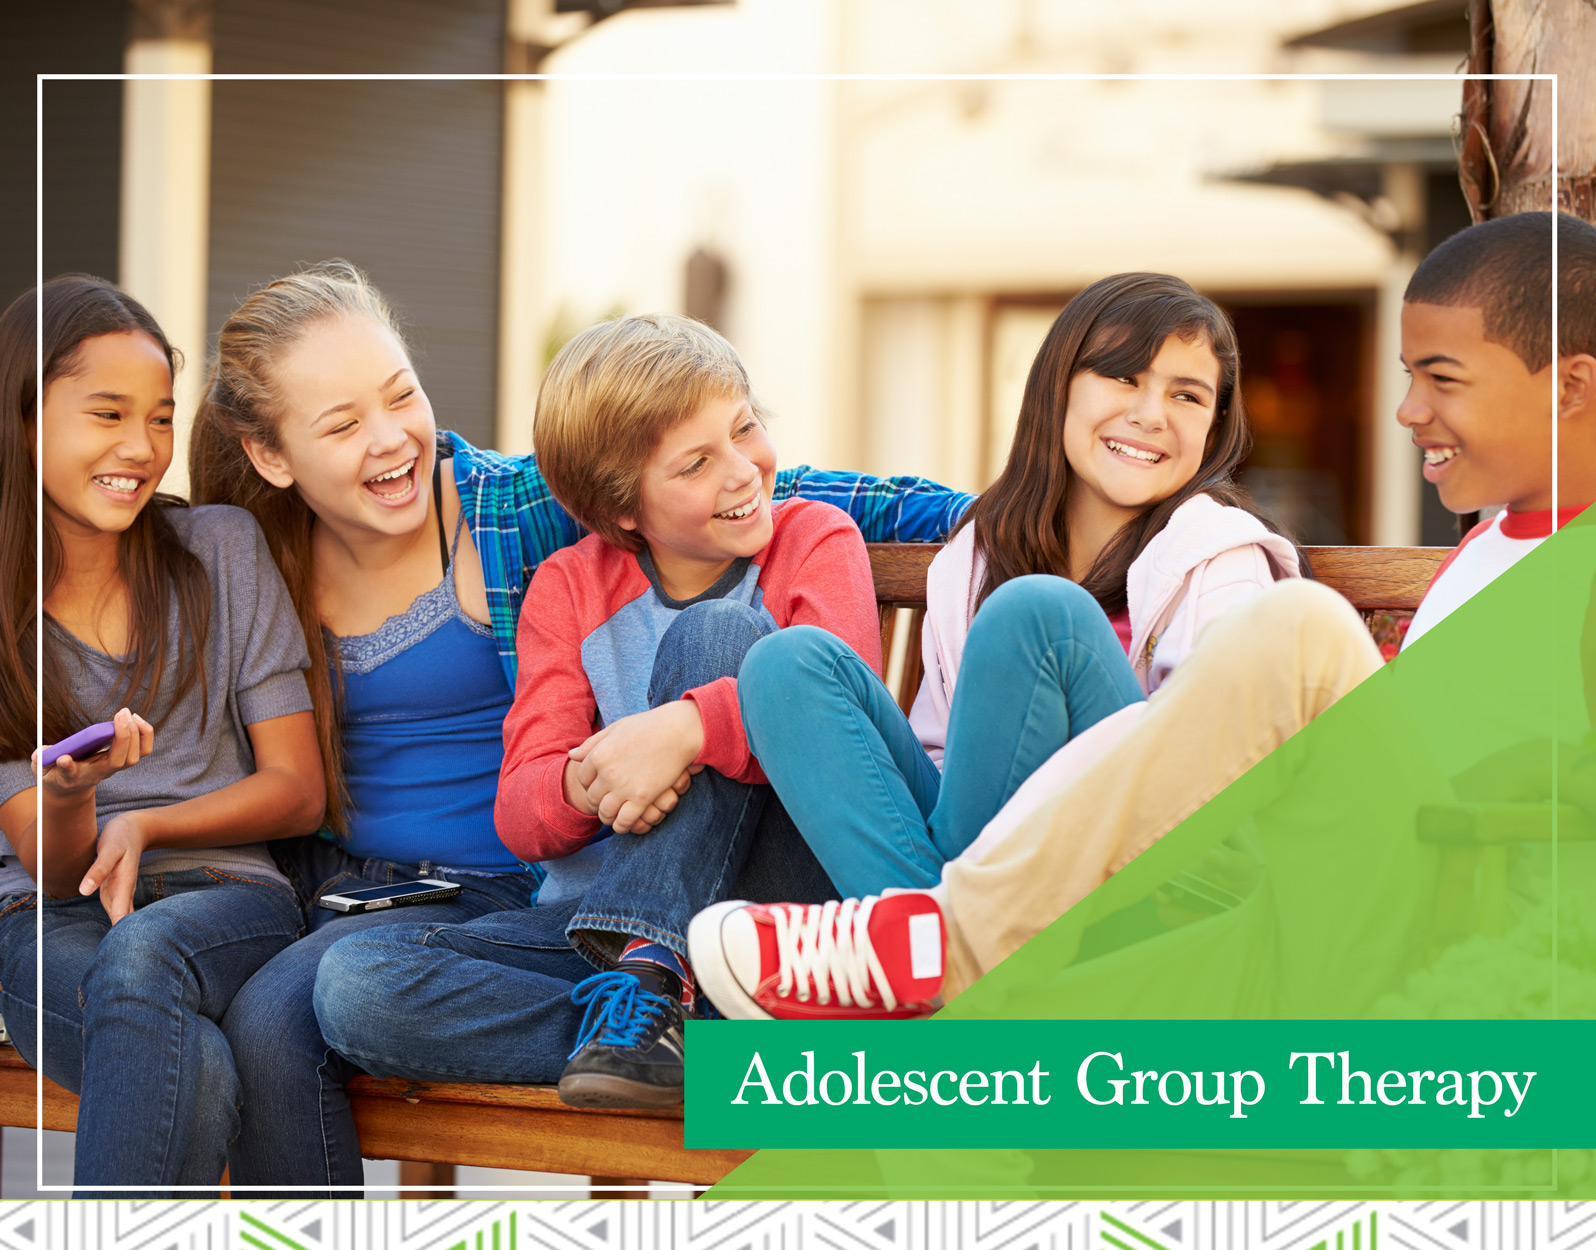 adolescent-group-therapy-dml-leno.jpg